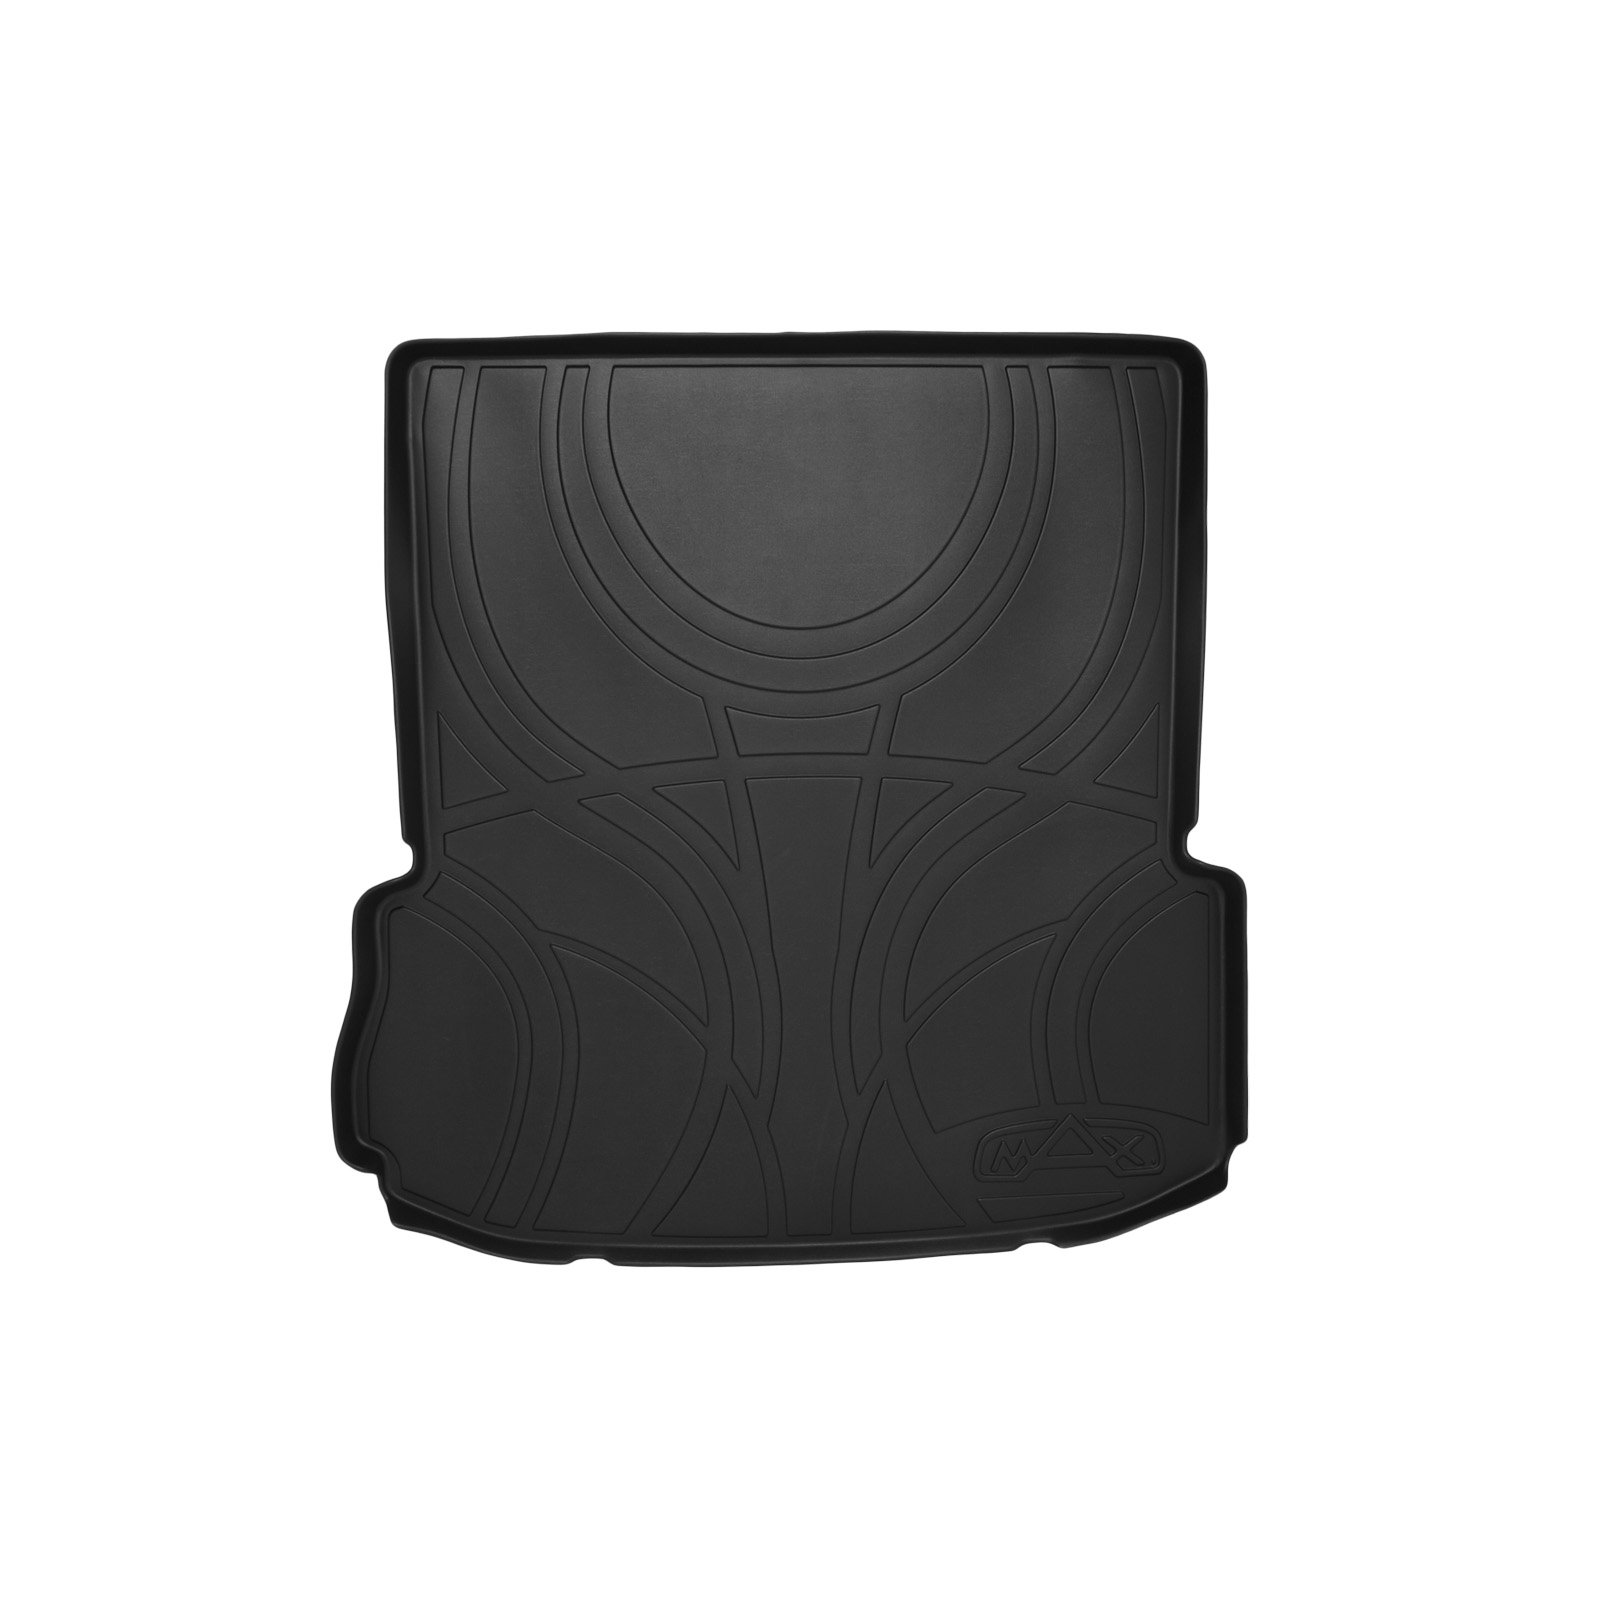 Ford explorer accessories amazon maxliner d0082 tray cargo liner for ford explorer behind 2nd row 2011 2017 fandeluxe Image collections